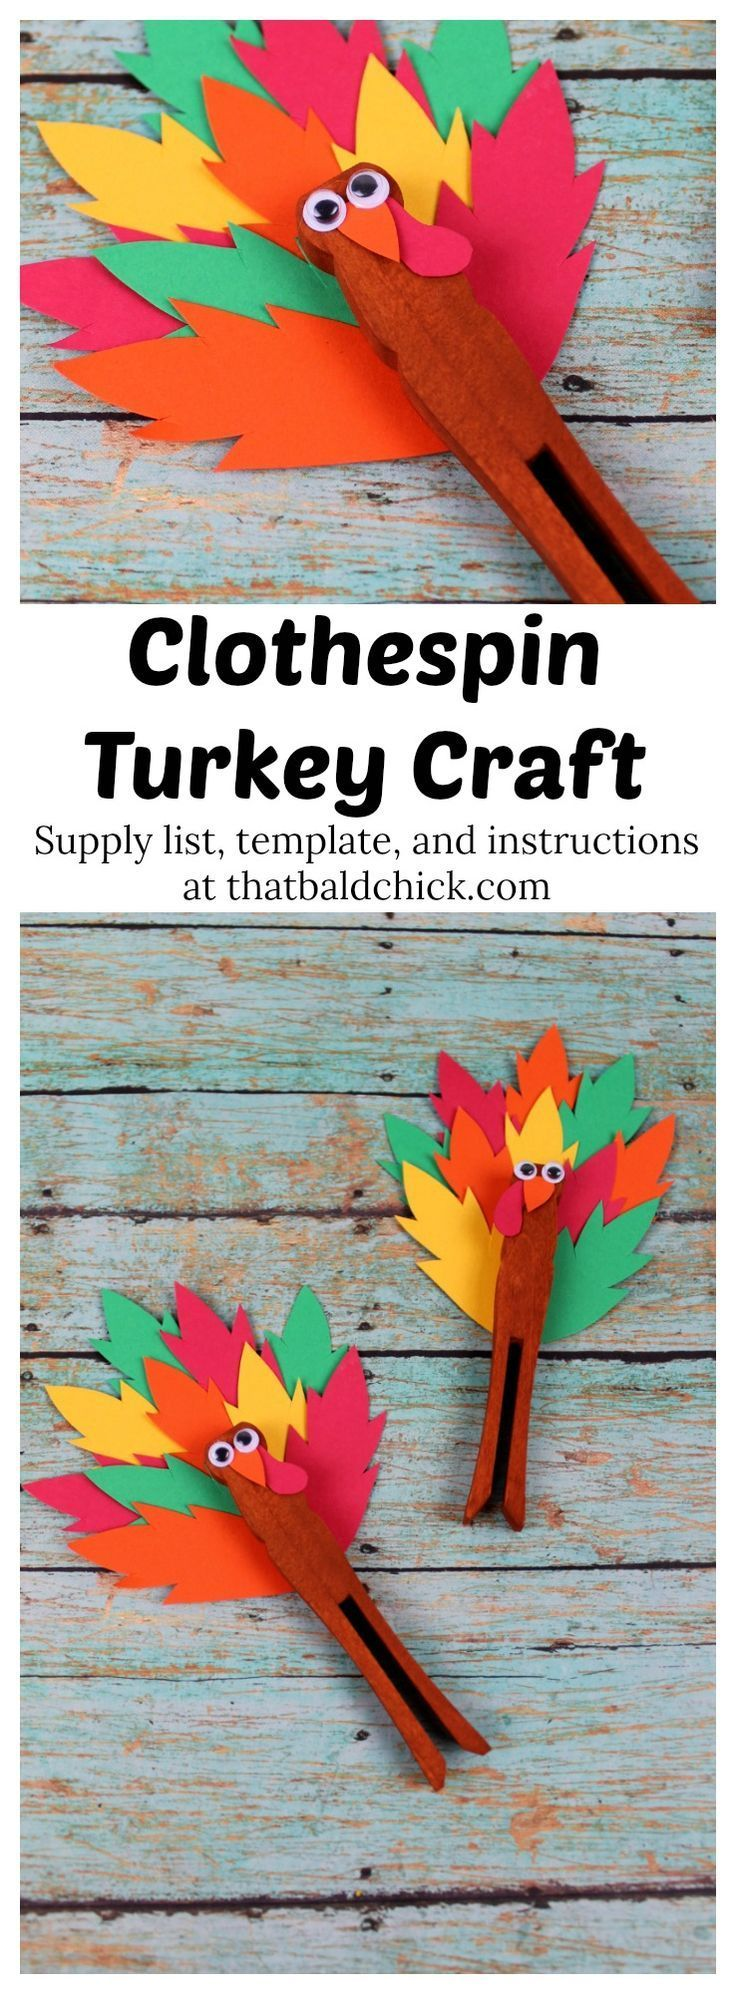 Fall crafts are just one of the ways to make Thanksgiving memorable for the kids and this adorable clothespin turkey craft is a fun one! Supply list, template, and directions at thatbaldchick.com via @thatbaldchick #thanksgivingcraft